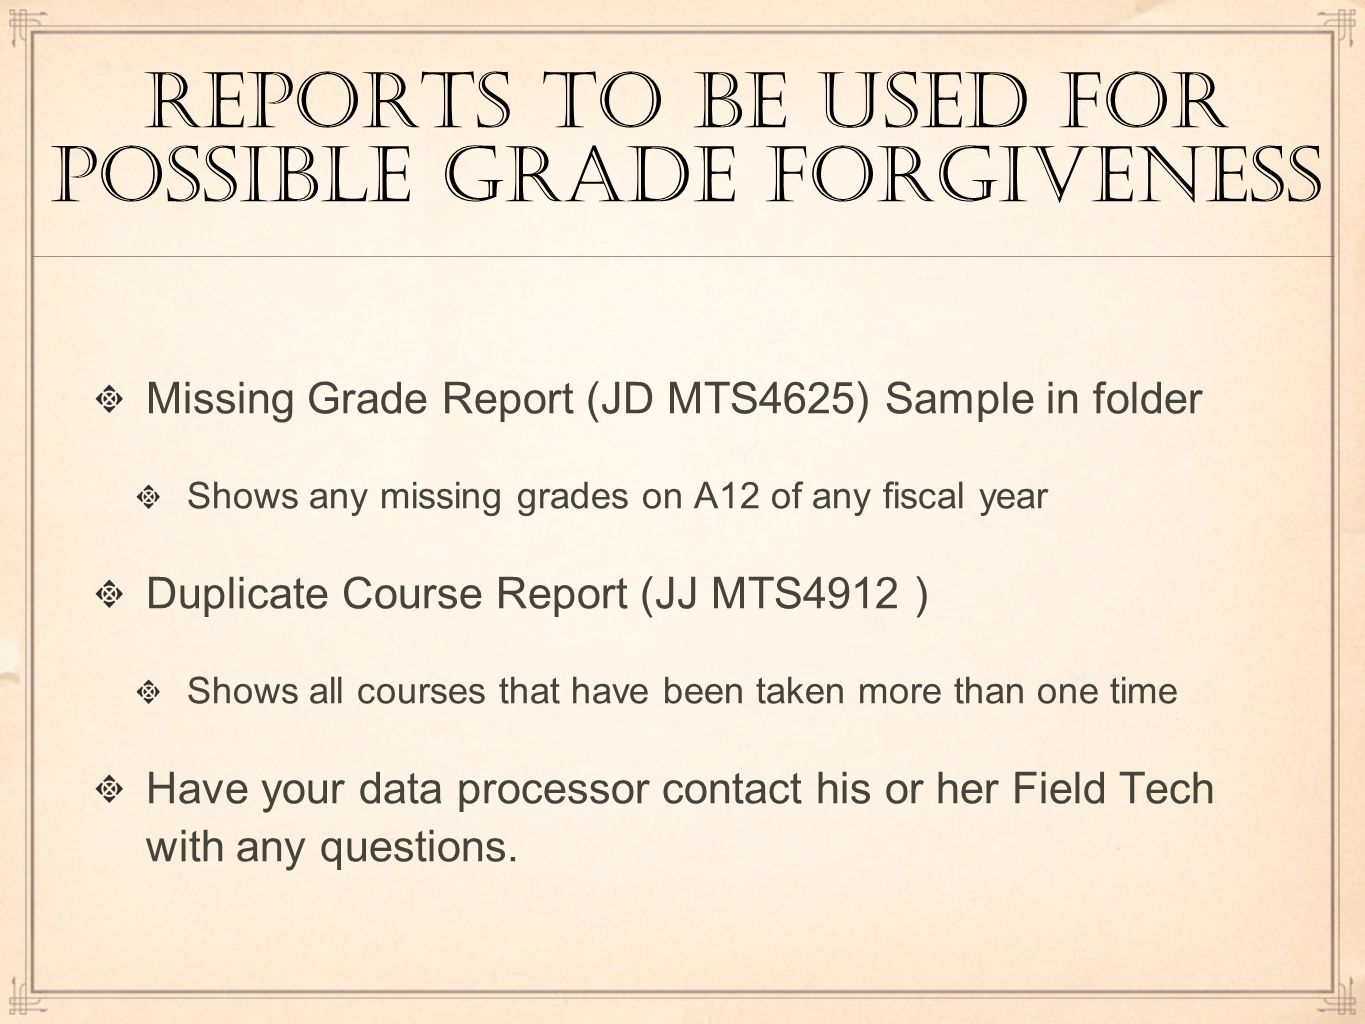 reports to be used for possible grade forgiveness Missing Grade Report (JD MTS4625) Sample in folder Shows any missing grades on A12 of any fiscal year Duplicate Course Report (JJ MTS4912 ) Shows all courses that have been taken more than one time Have your data processor contact his or her Field Tech with any questions.